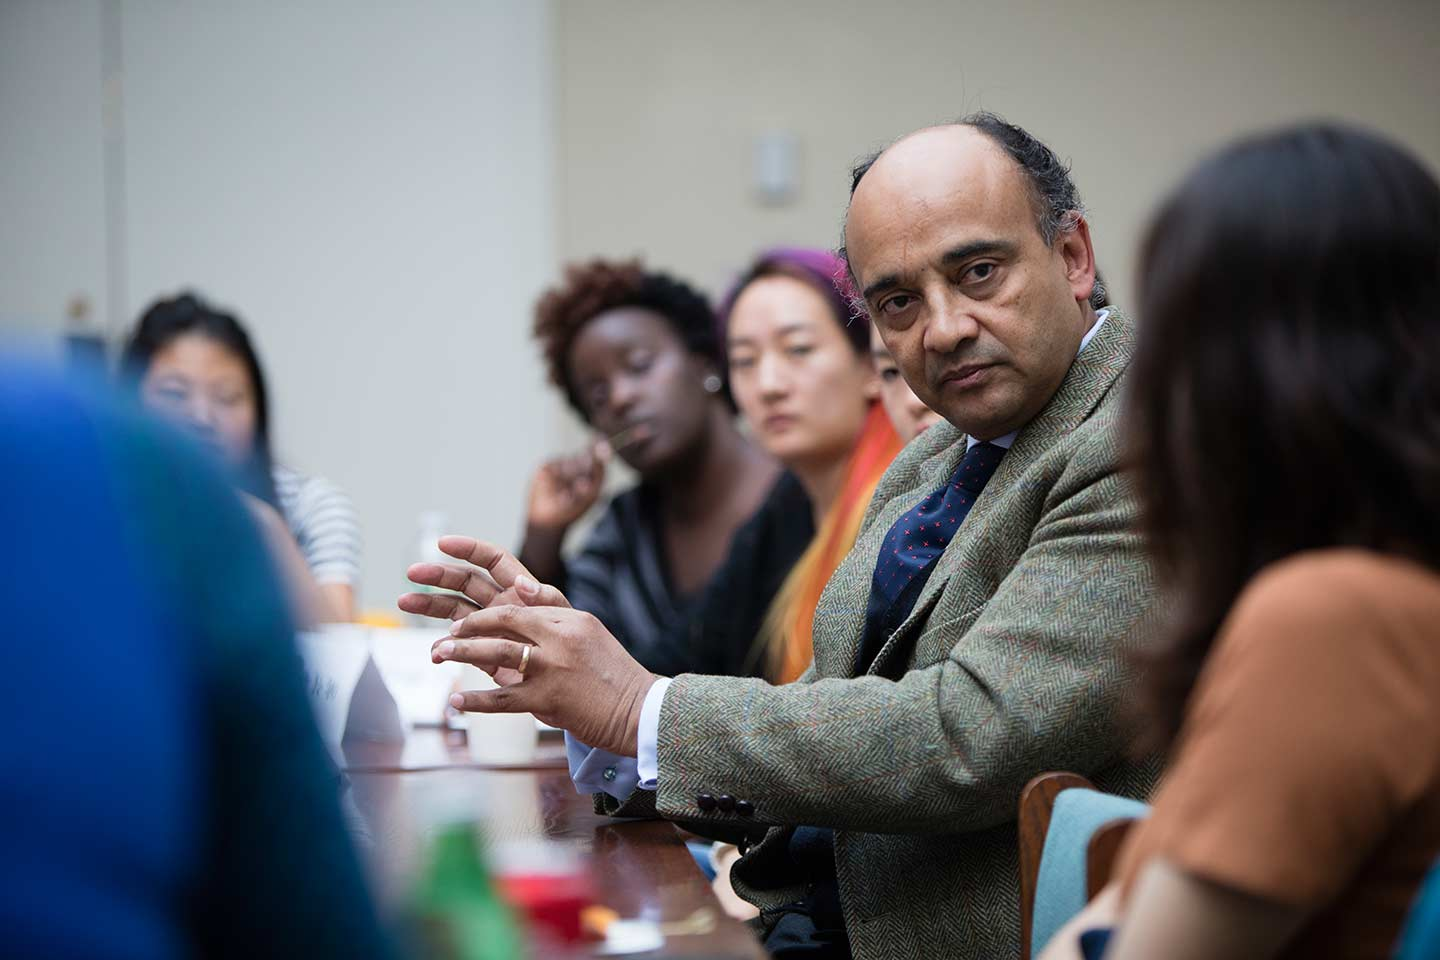 Kwame Anthony Appiah leading a classroom discussion at Amherst College.